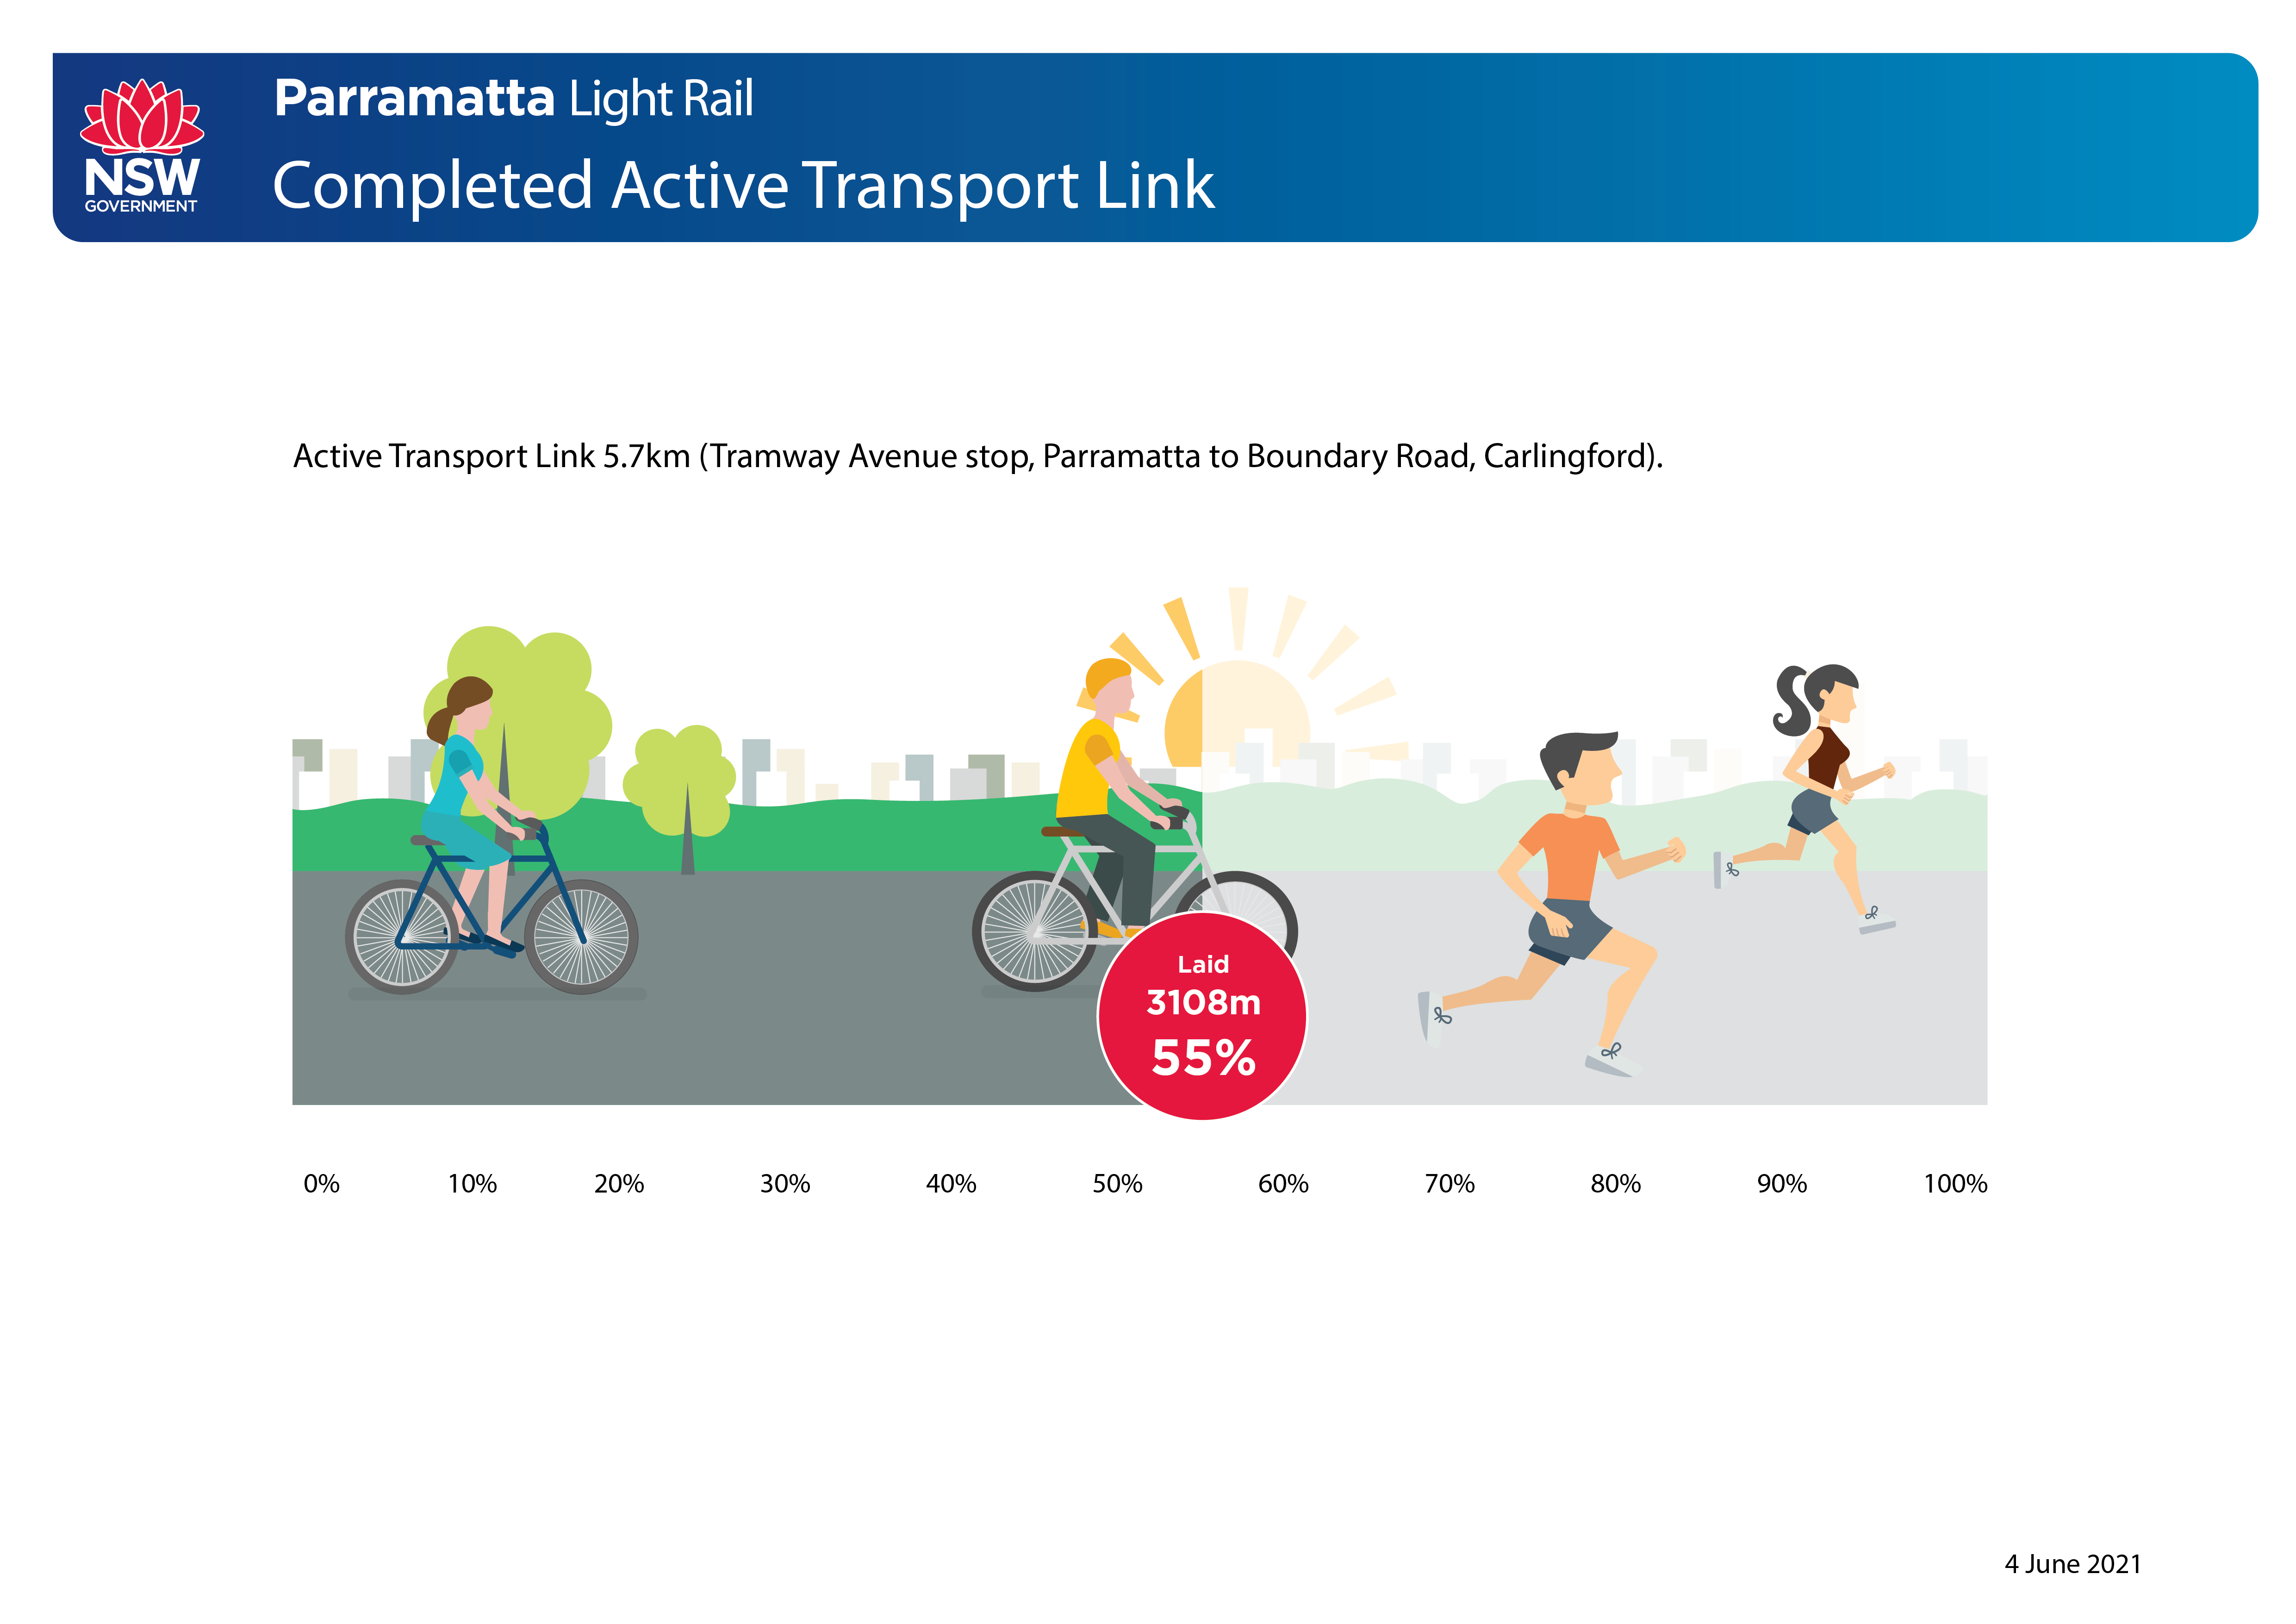 Graphic of the active transport link progress